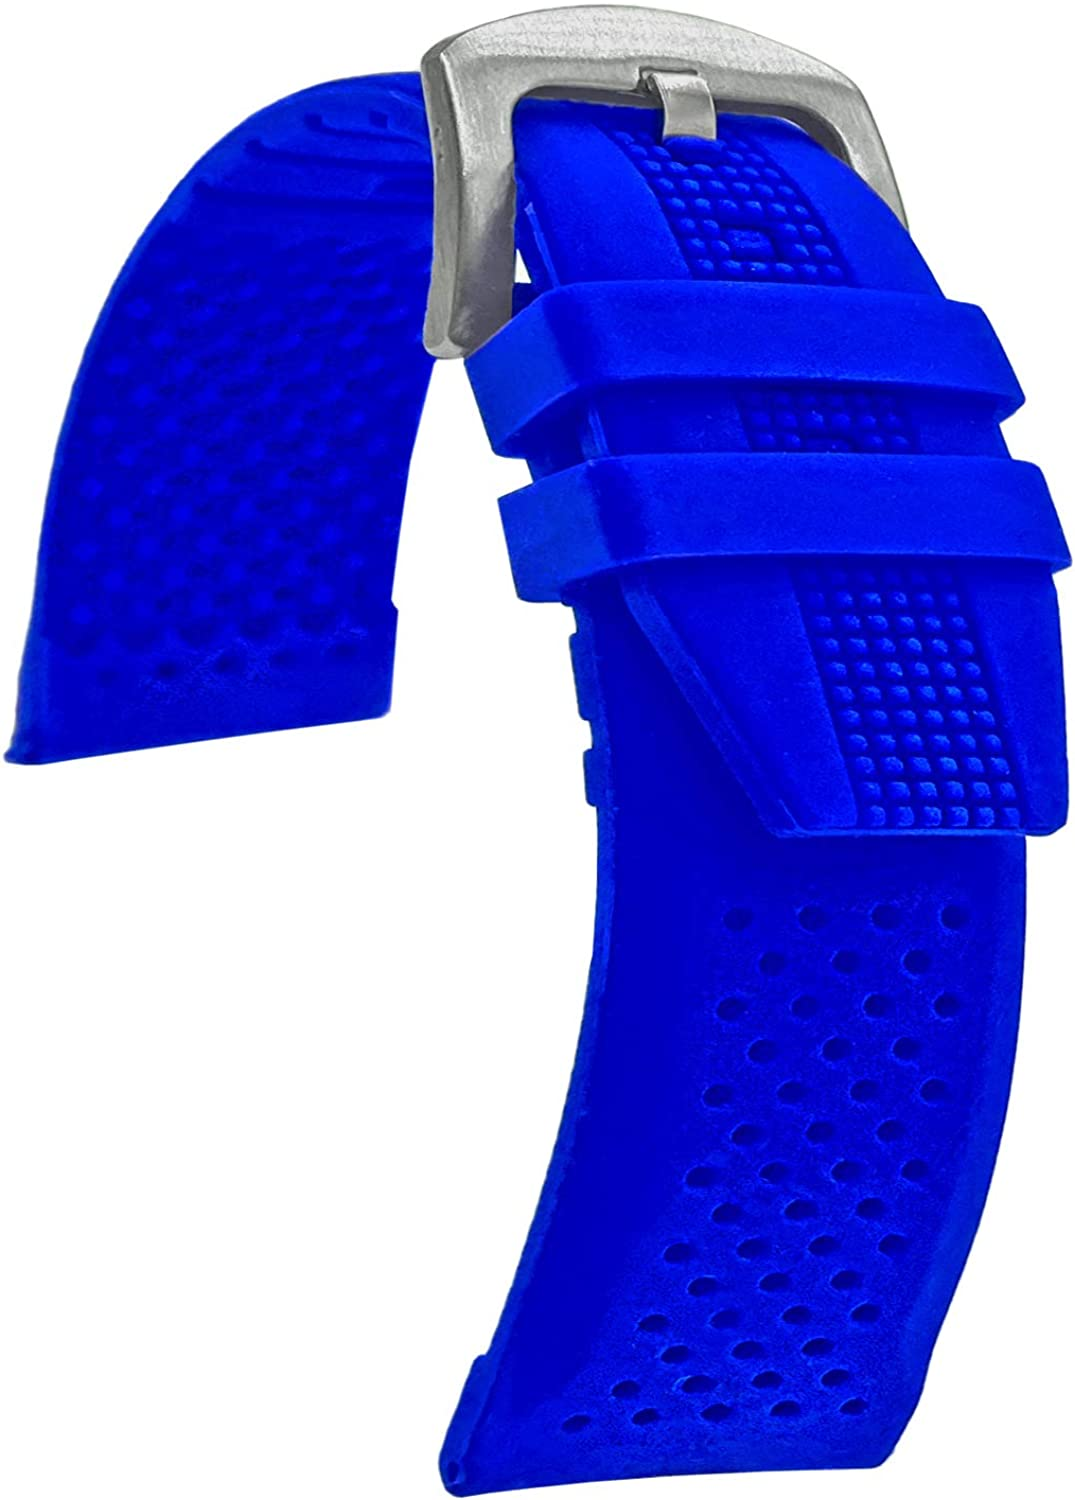 Quality Waterproof Silicone Watch Band B Soft Rubber Seasonal Weekly update Wrap Introduction Strap